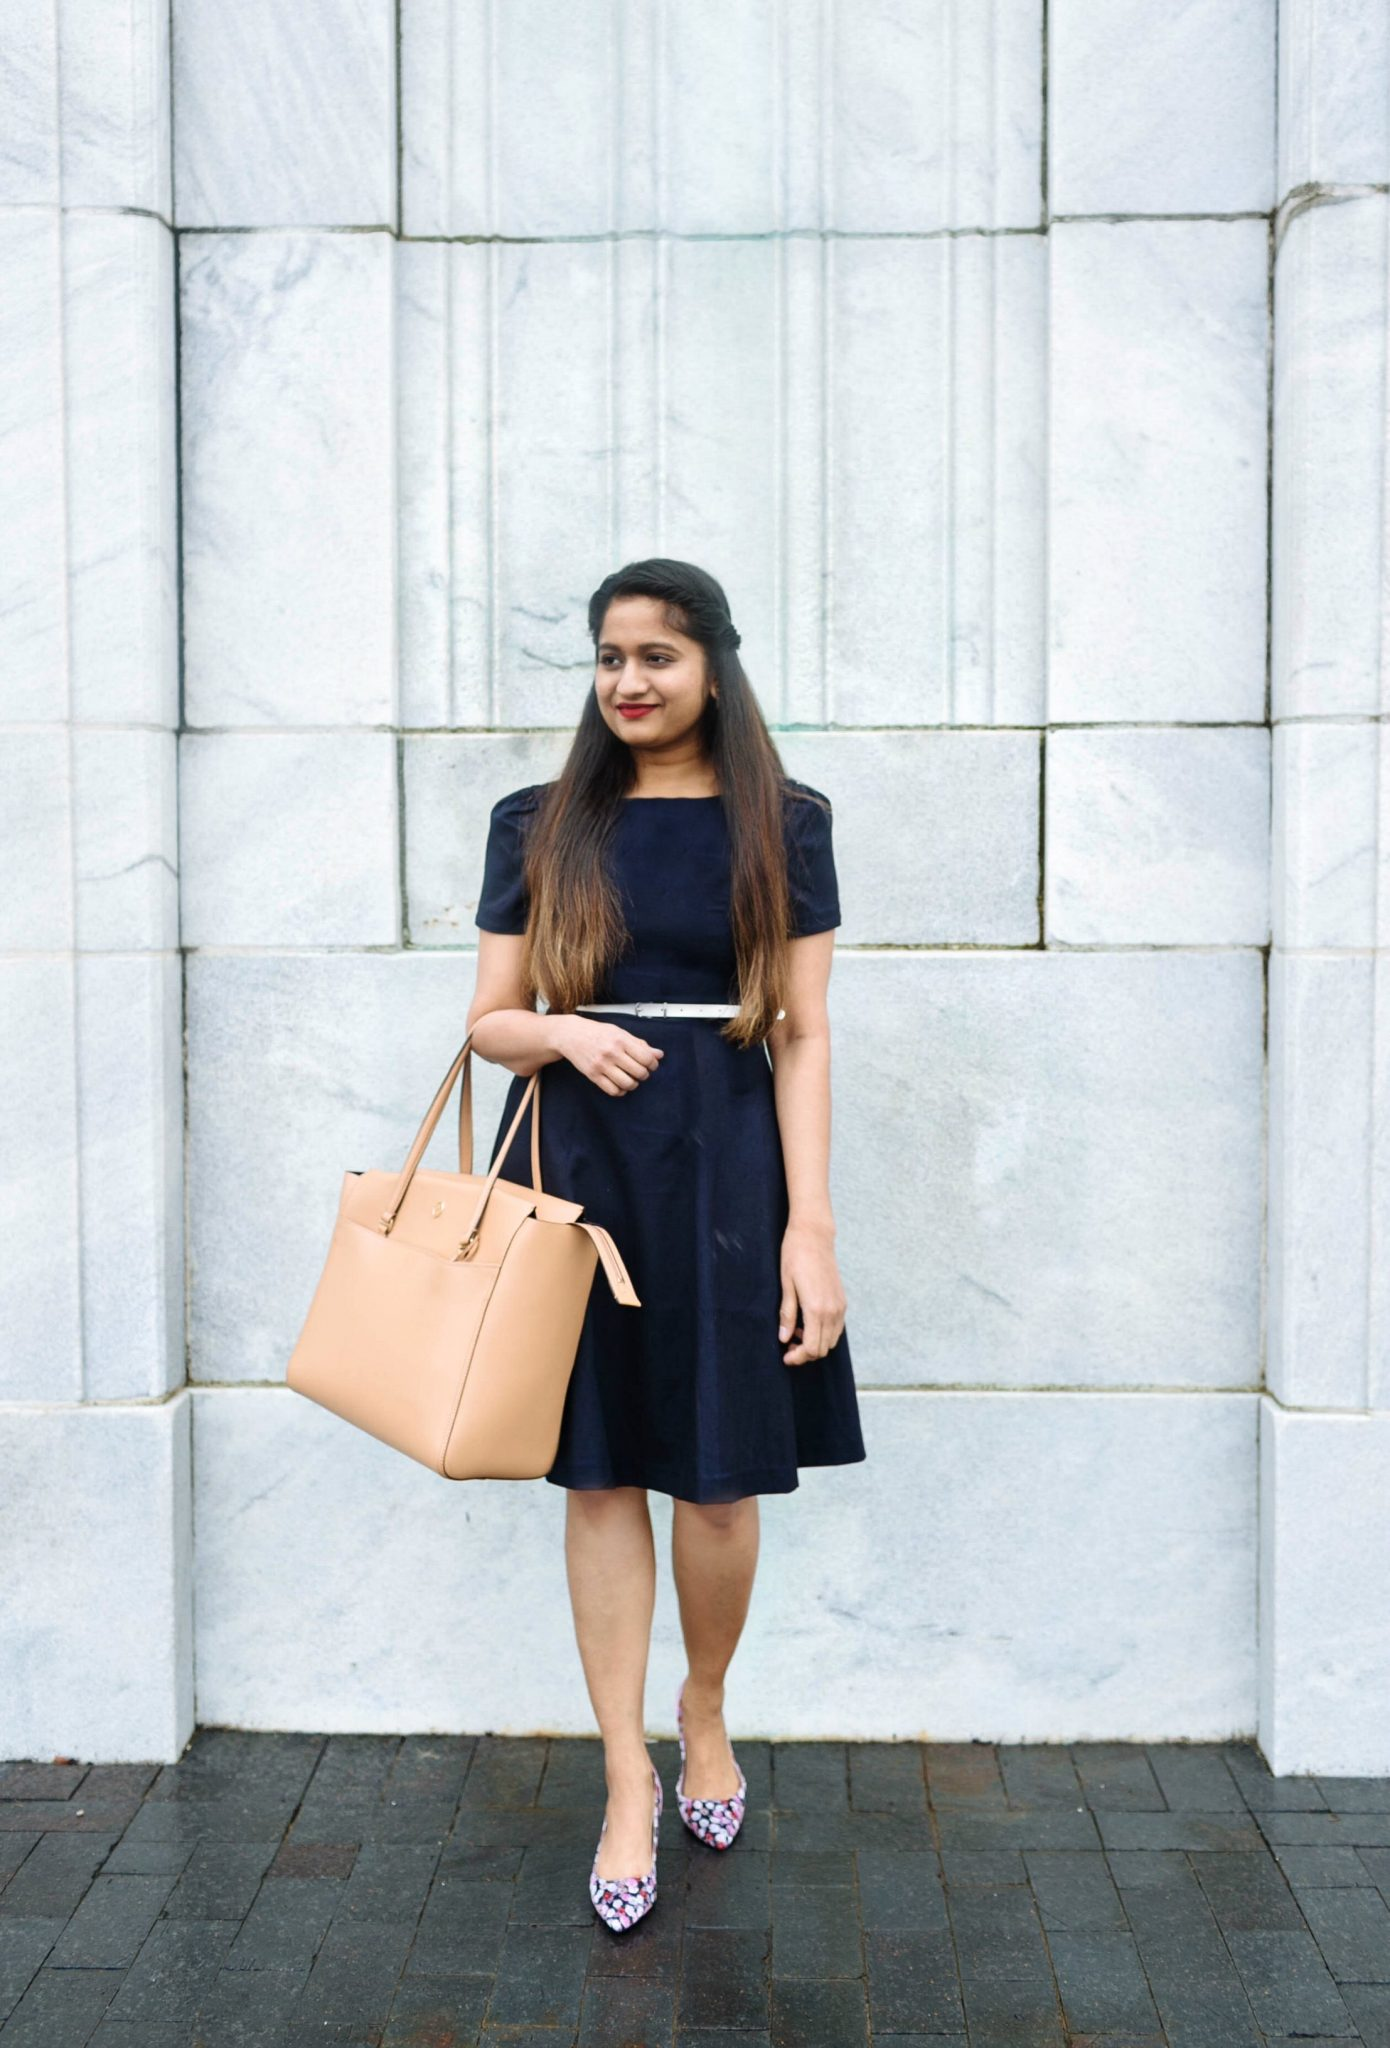 wearing H&M puffed sleeve dress-2 | 20 Outfit Fall colorful capsule wardrobe | Colorful Fall Work Outfits featured by popular US modest fashion blogger, Dreaming Loud